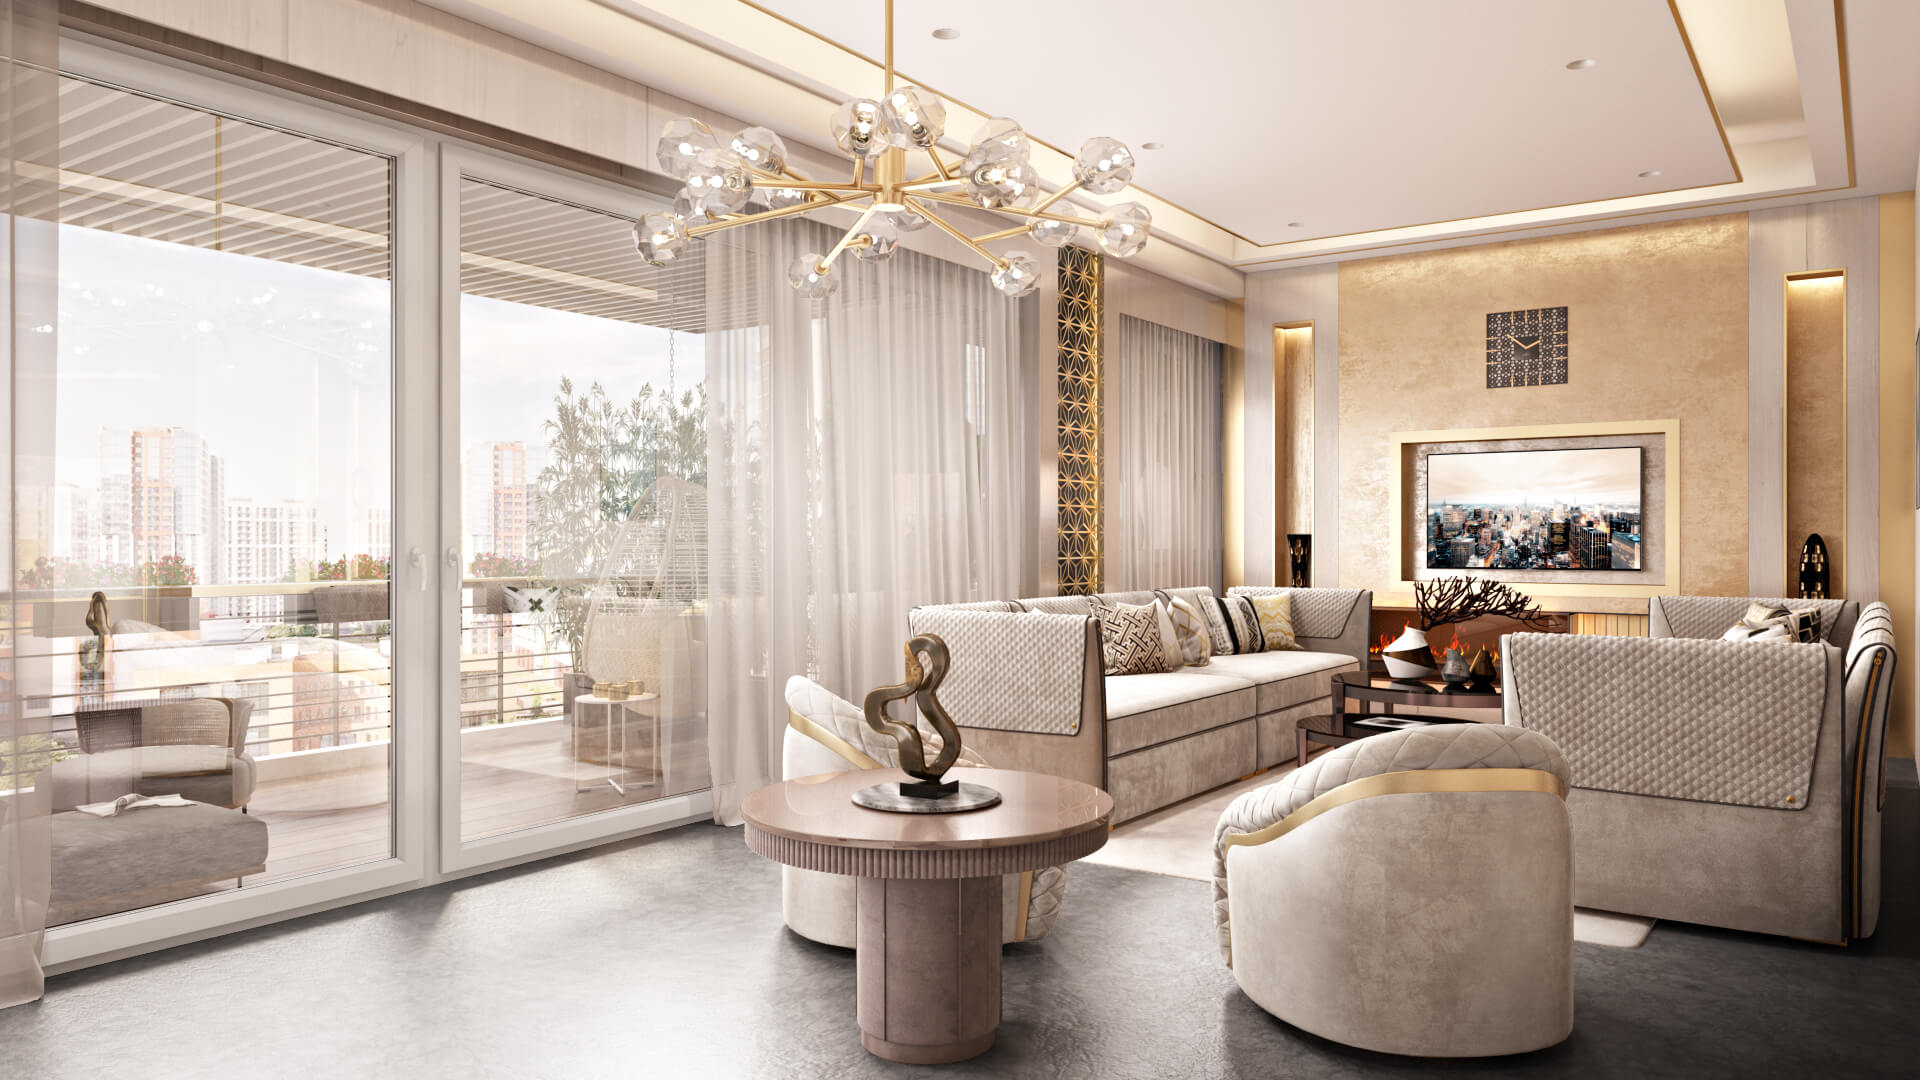 3D Visualization of a Fancy Interior in a Spacious Flat with a Balcony